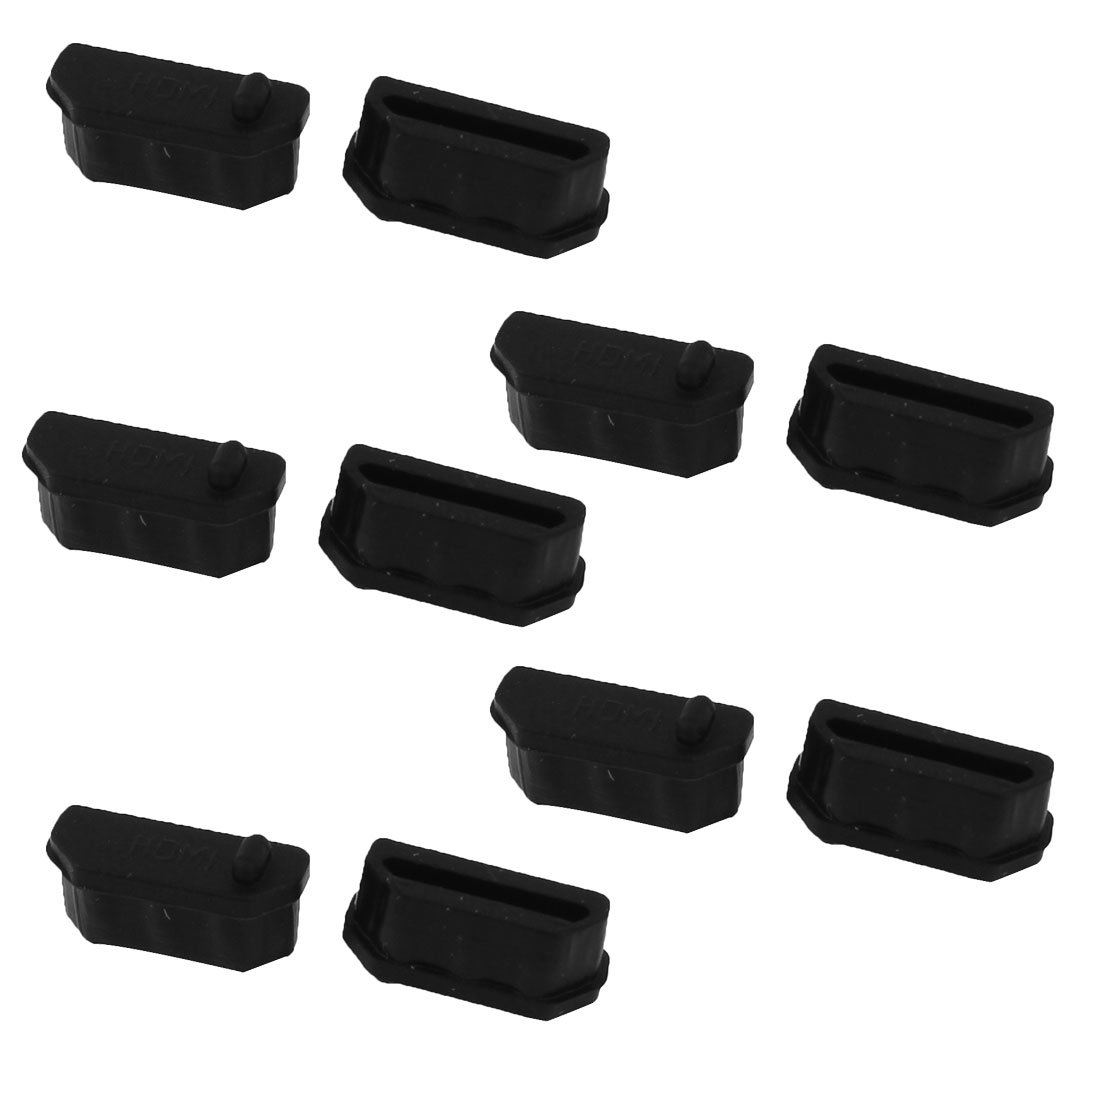 uxcell Silicone Computer Anti Dust Cover Cap Protector Black 10 Pcs for HDMI Female Port